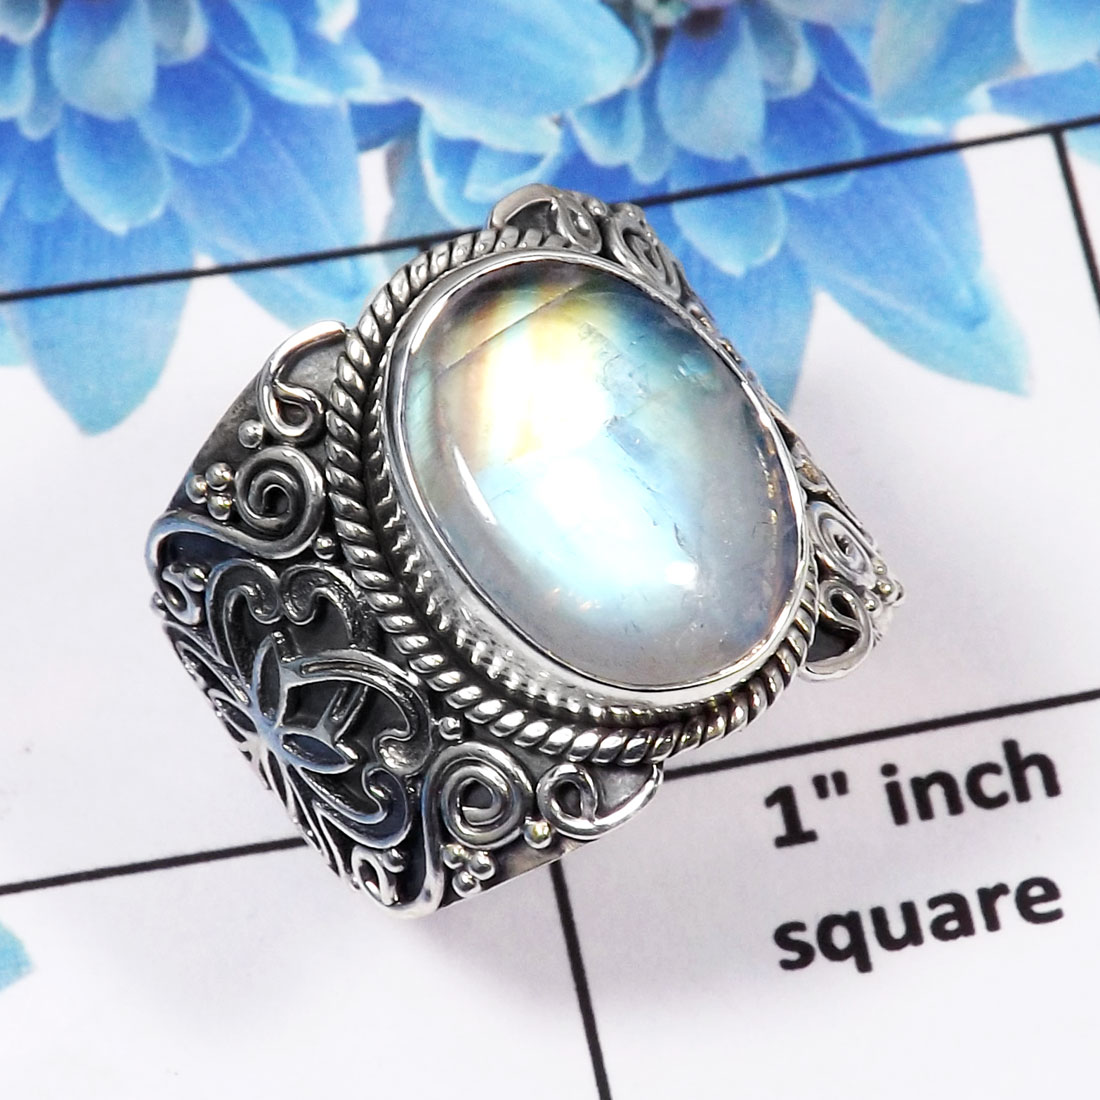 Rainbow Moonstone Cab Ring-E SDR445-Natural Fiery Rainbow Moonstone 925 Sterling Silver Handmade Designer Mood Ring